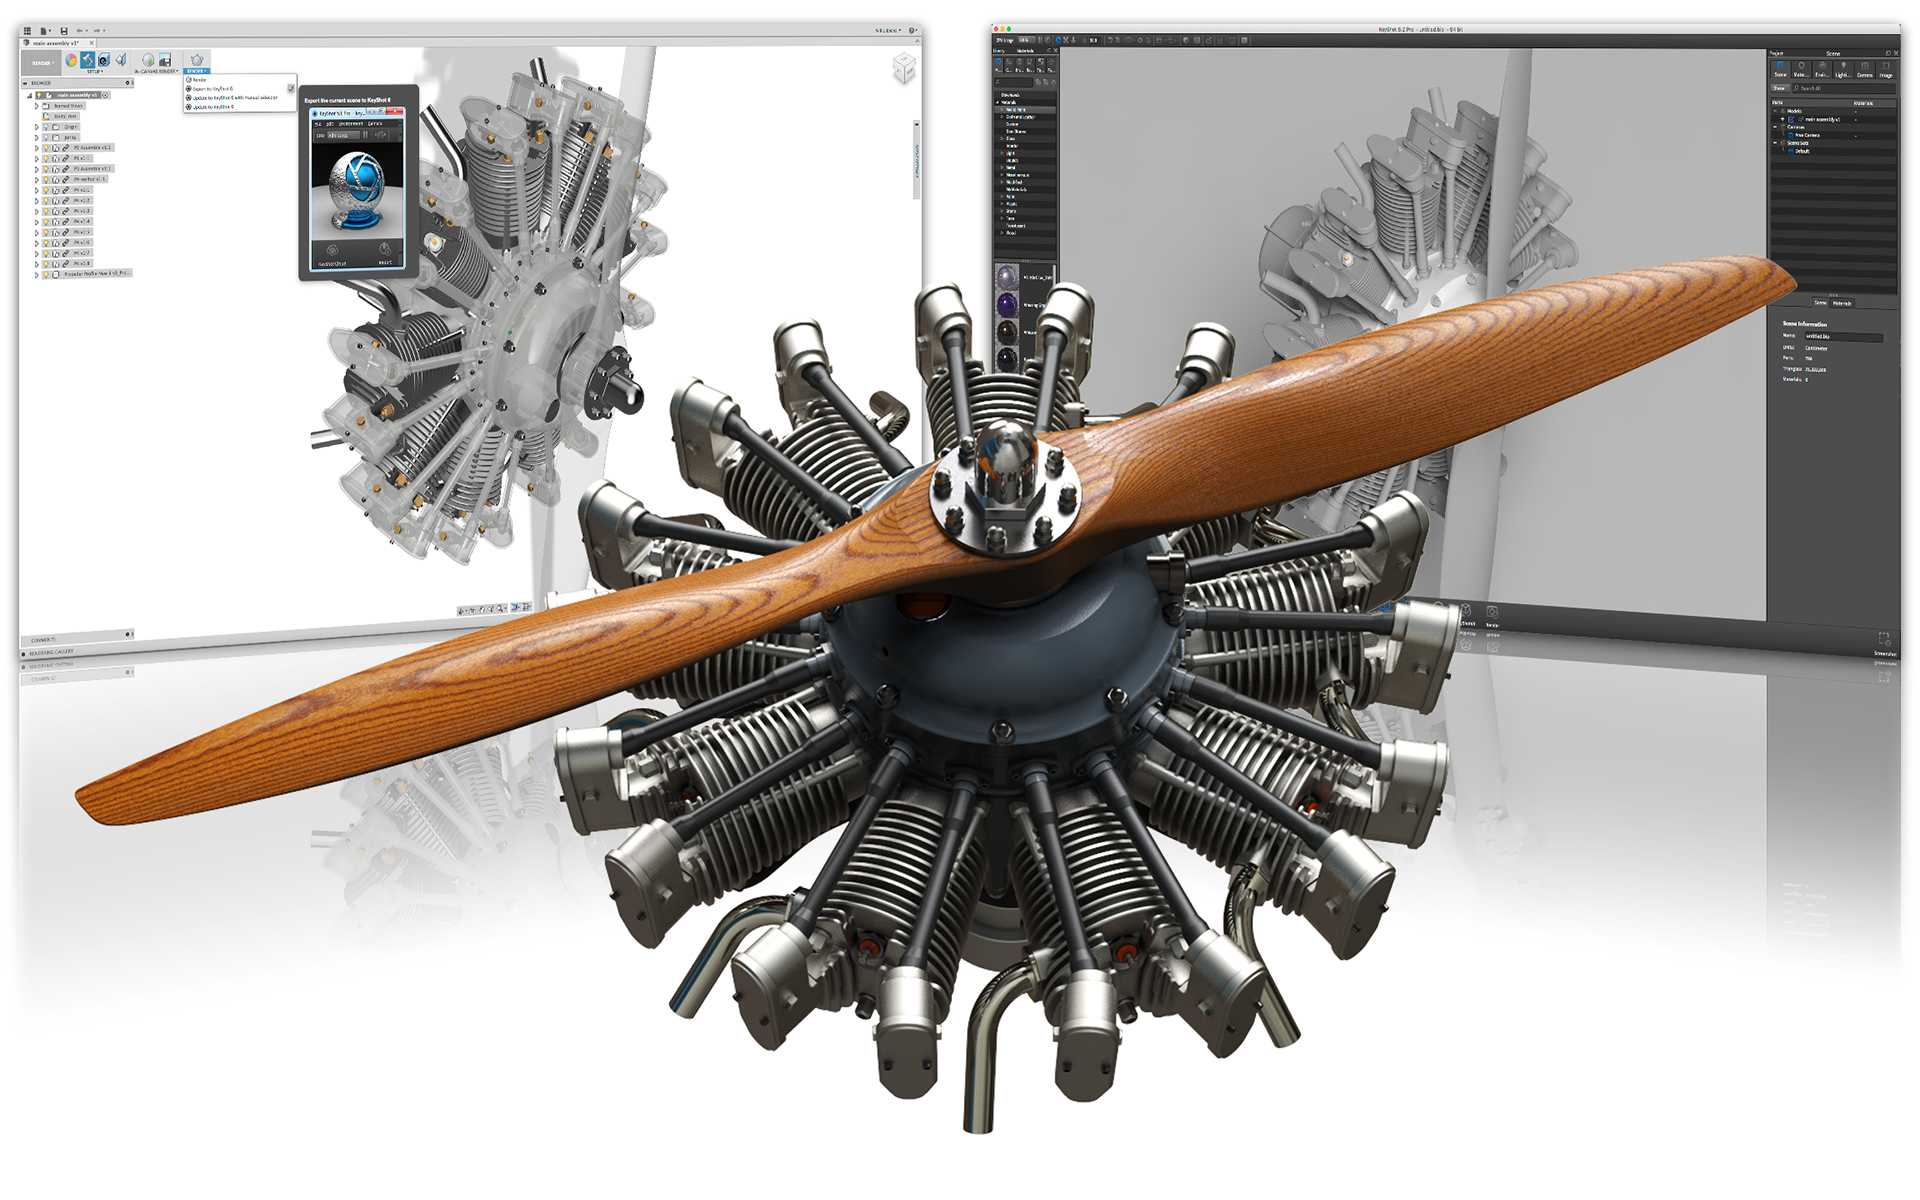 3d Modeling Wallpaper Solidworks Luxion Releases New Plugins For Autodesk Fusion 360 Revit